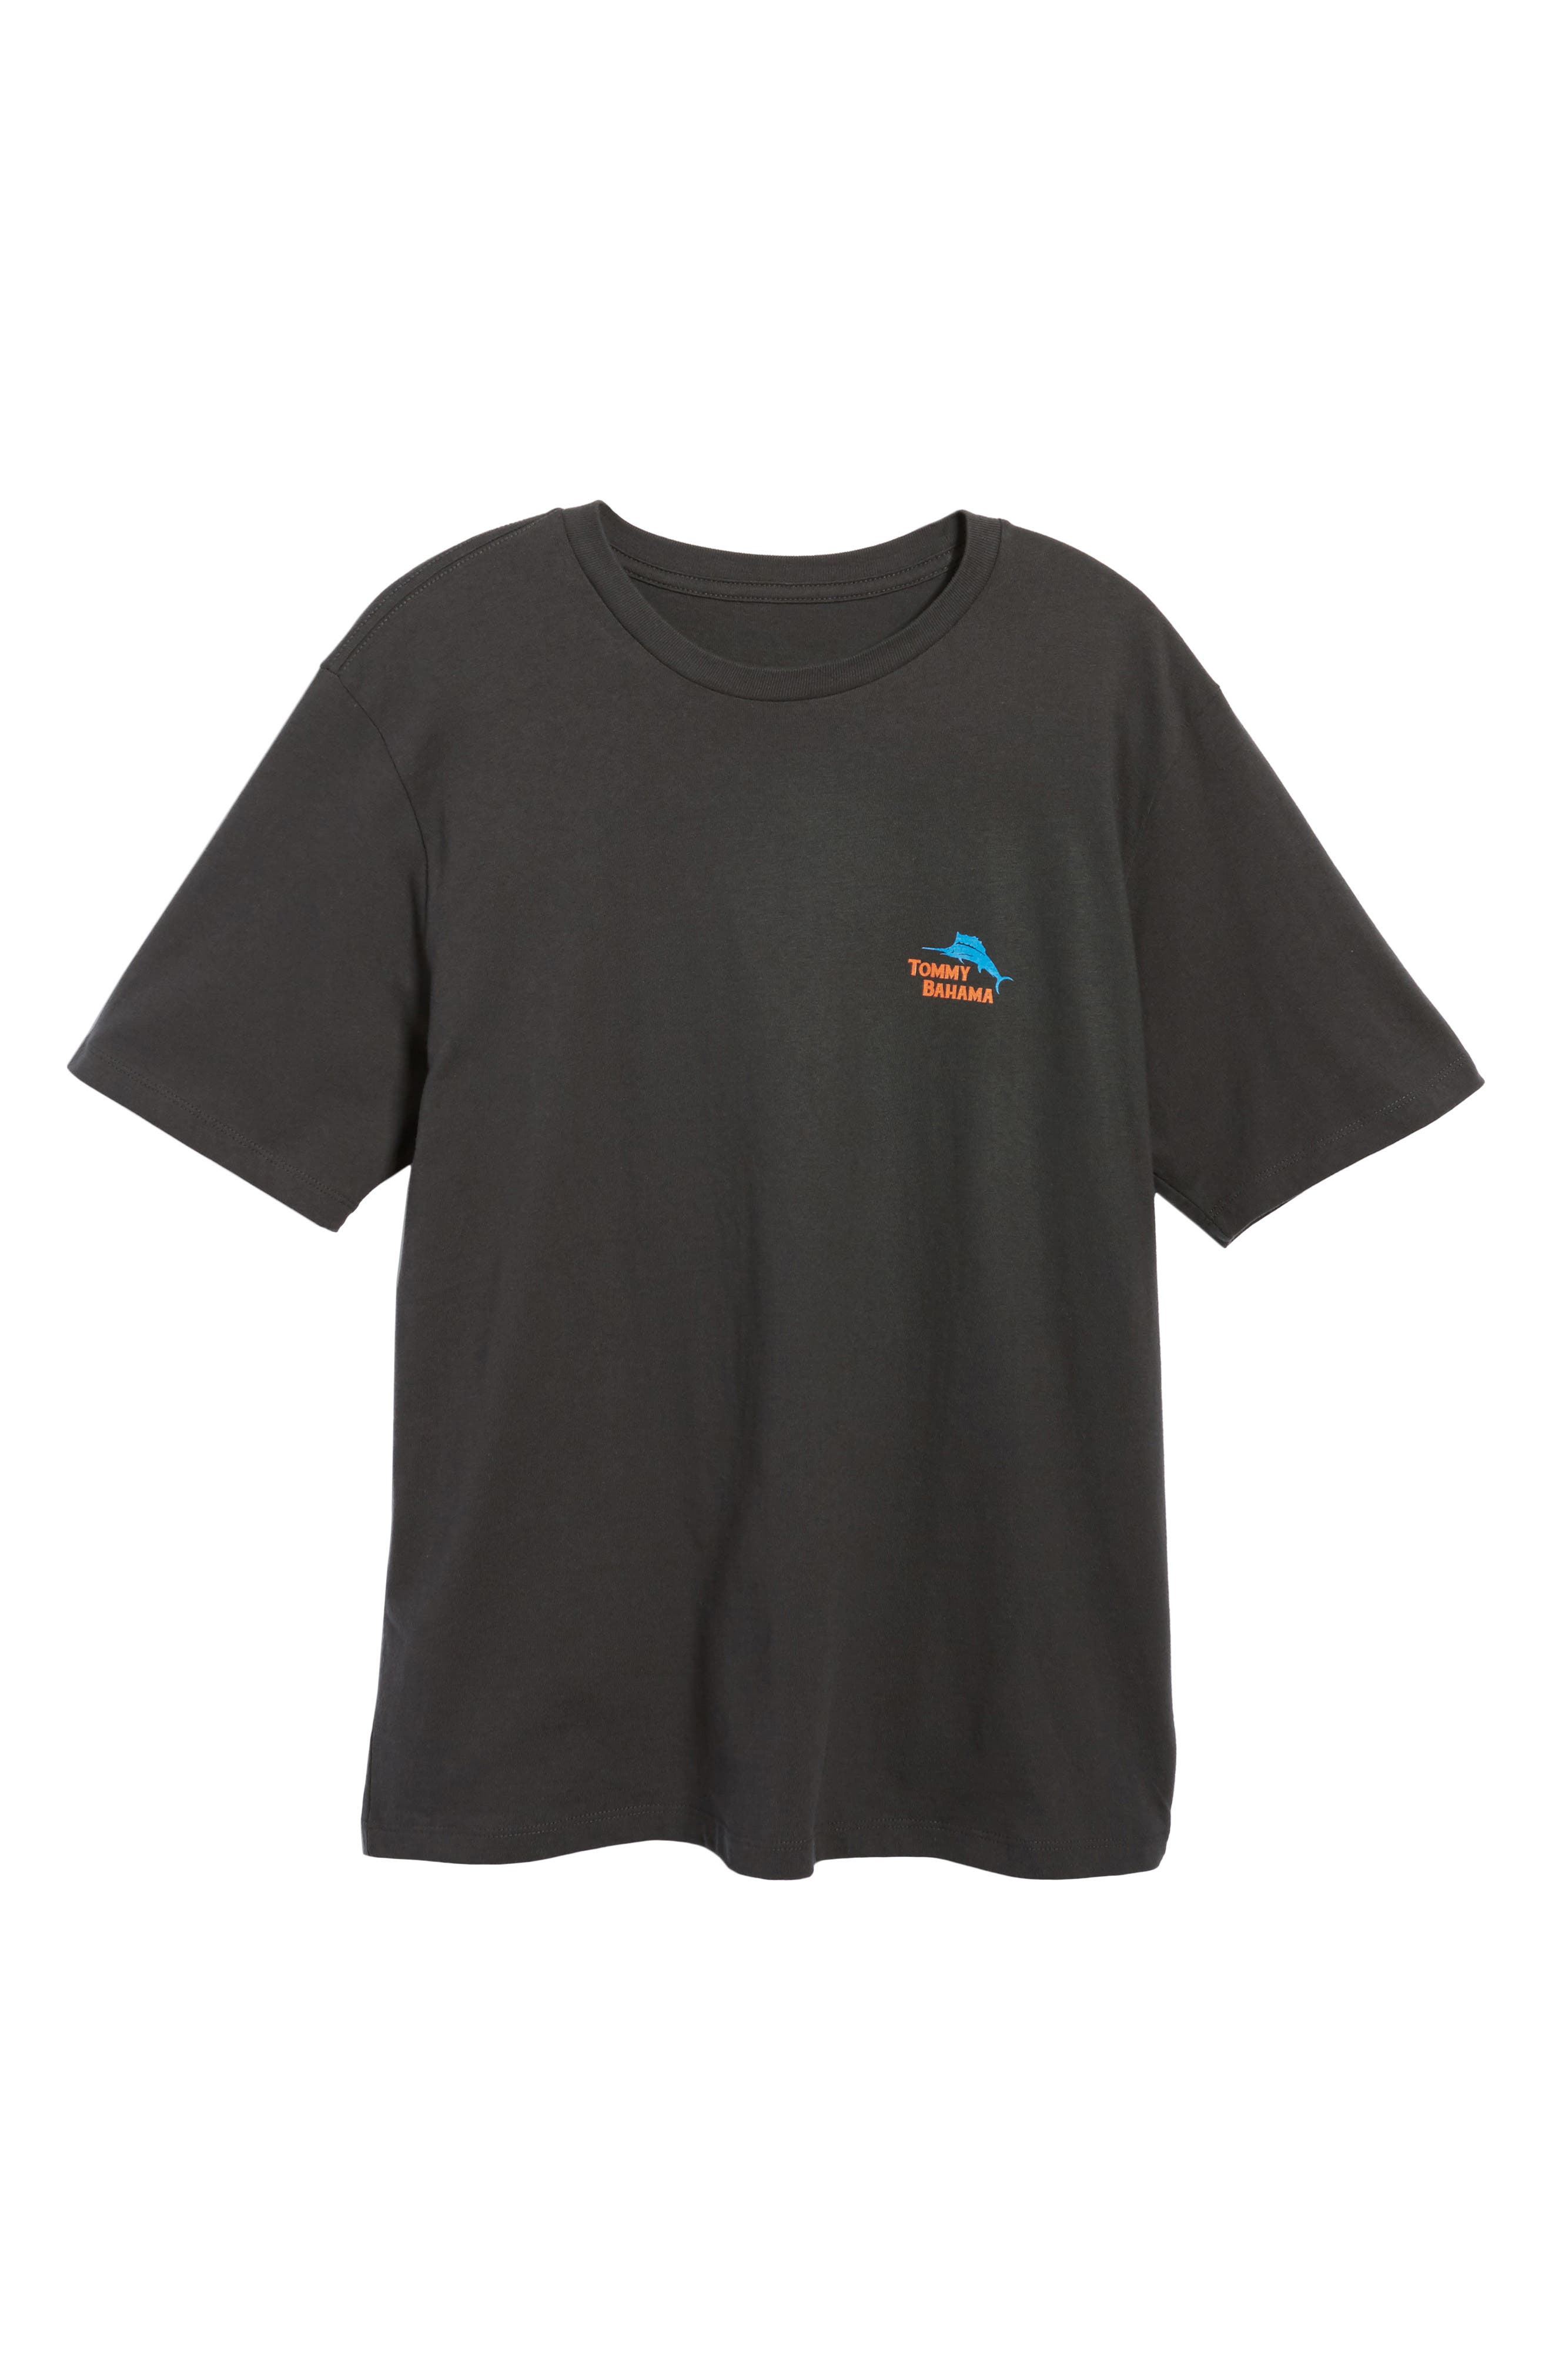 Squawkin To Me Graphic T-Shirt,                             Alternate thumbnail 6, color,                             001